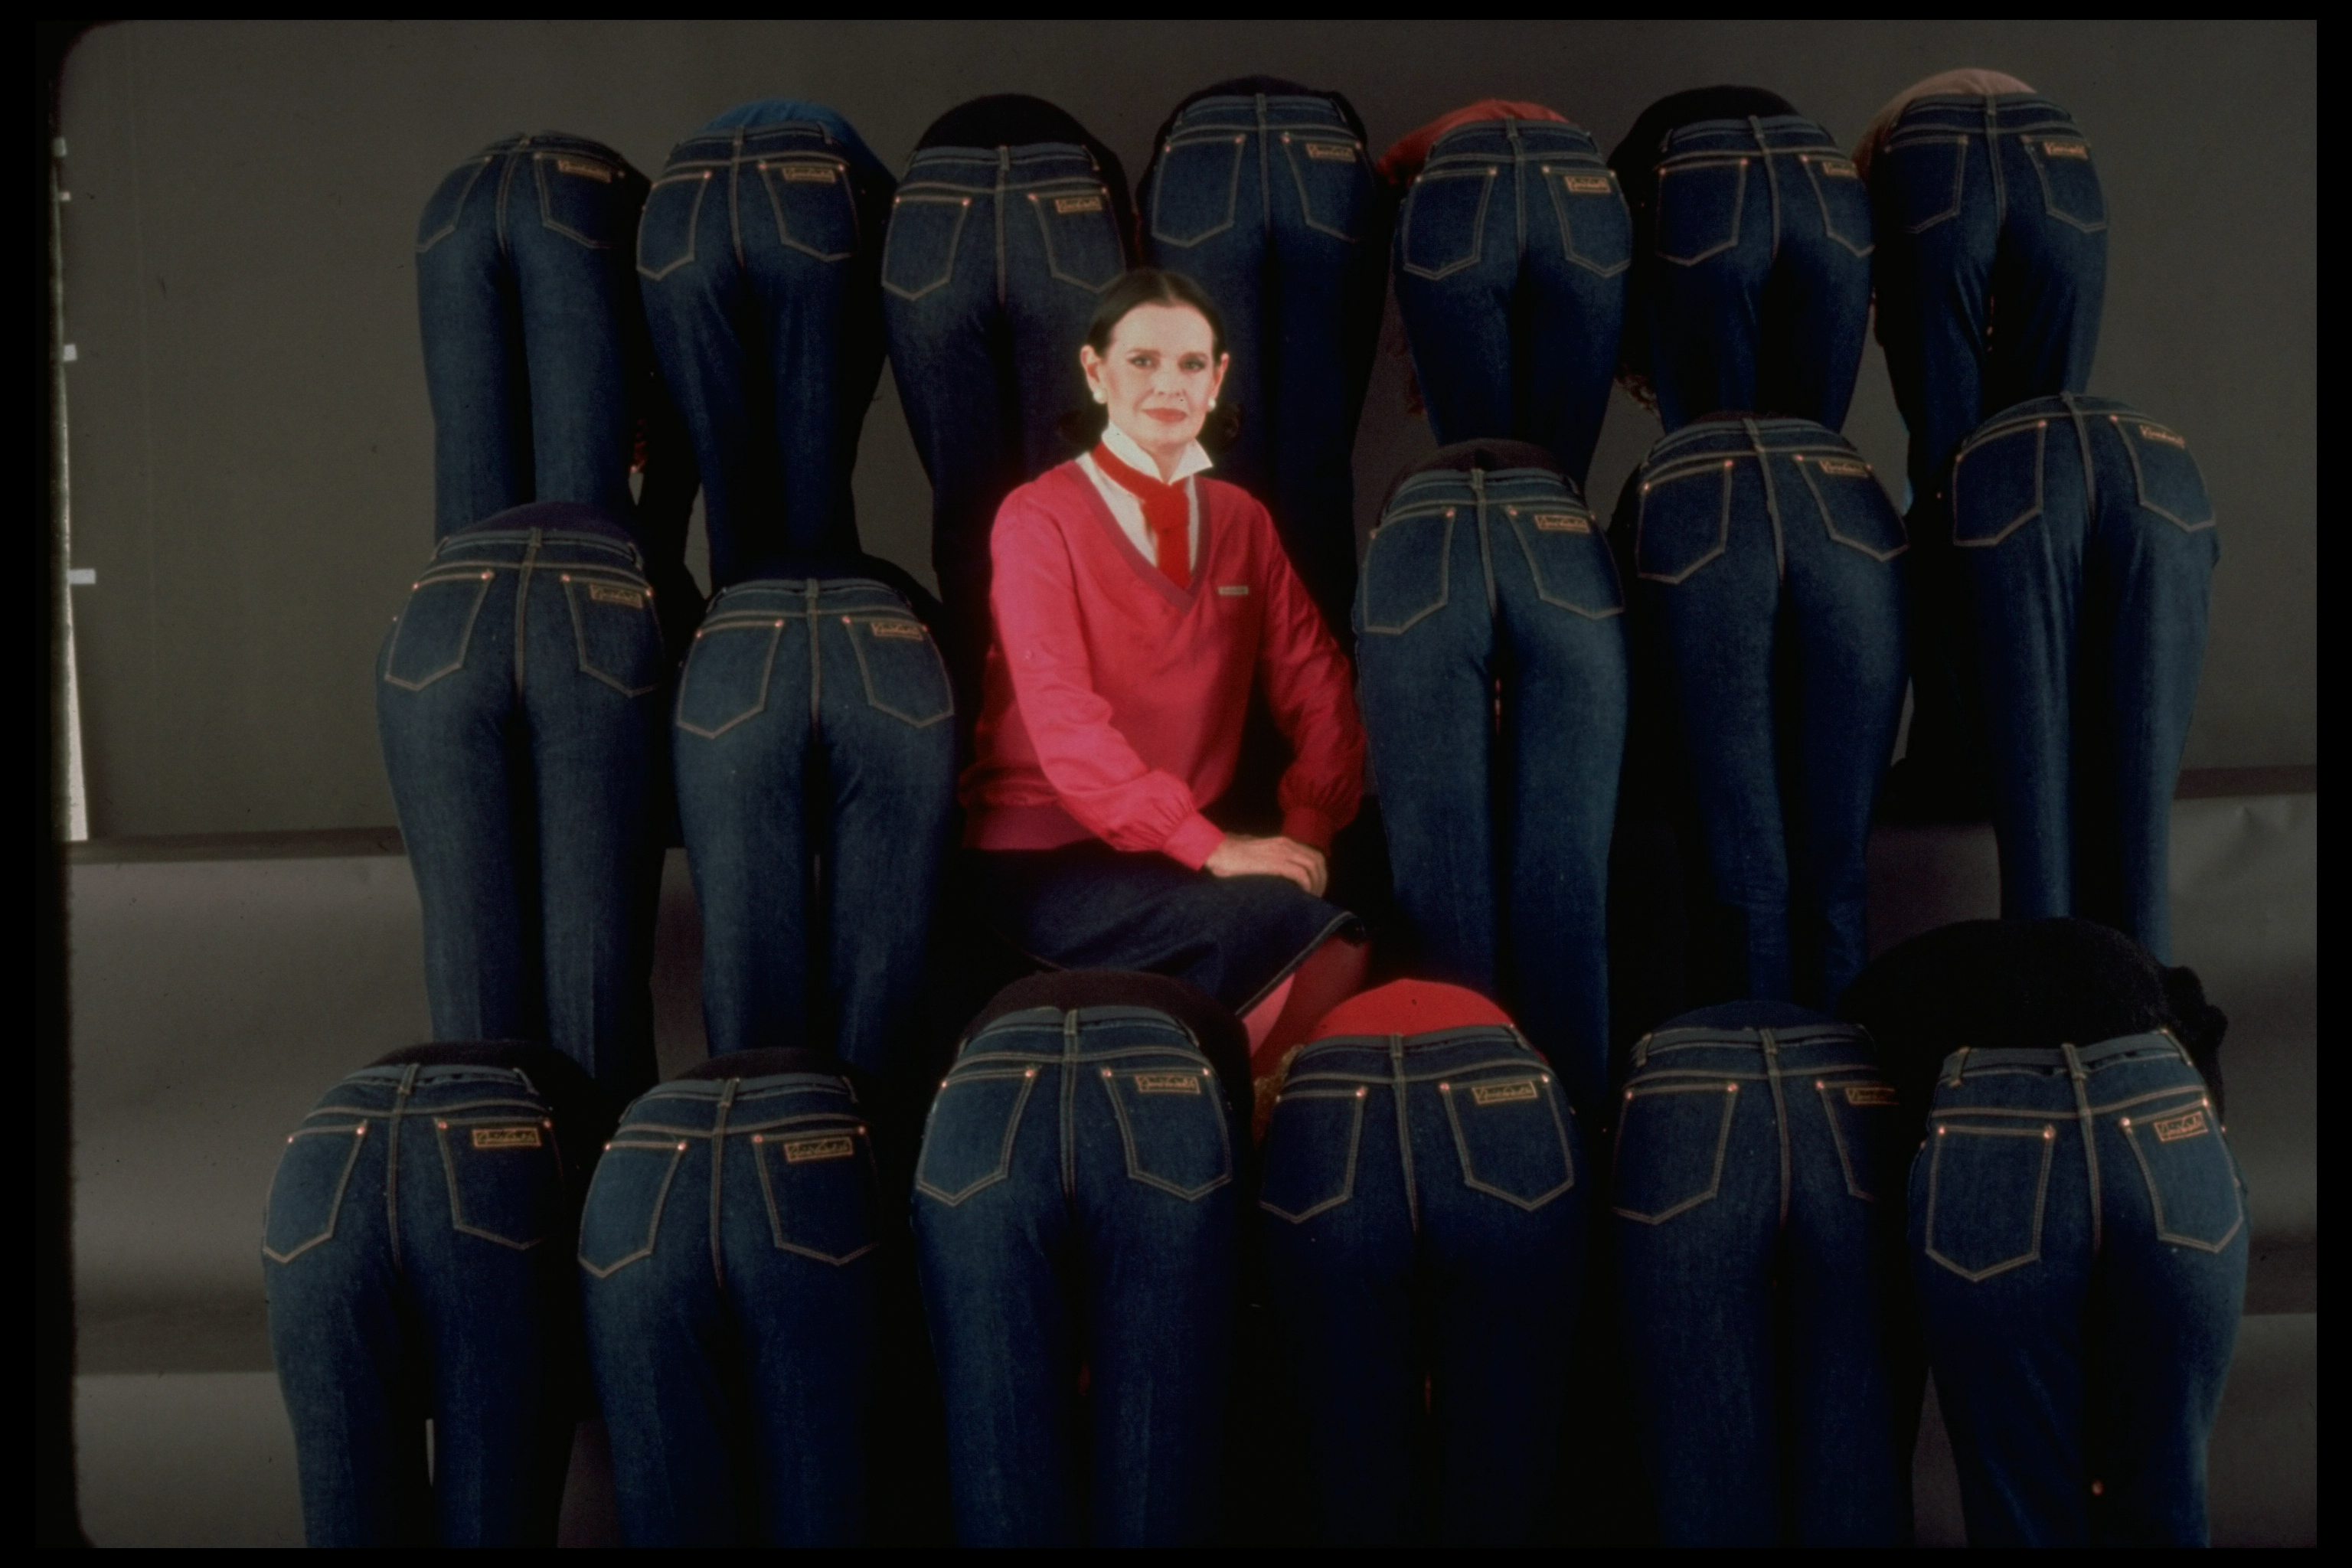 Gloria Vanderbilt changed how we feel about jeans